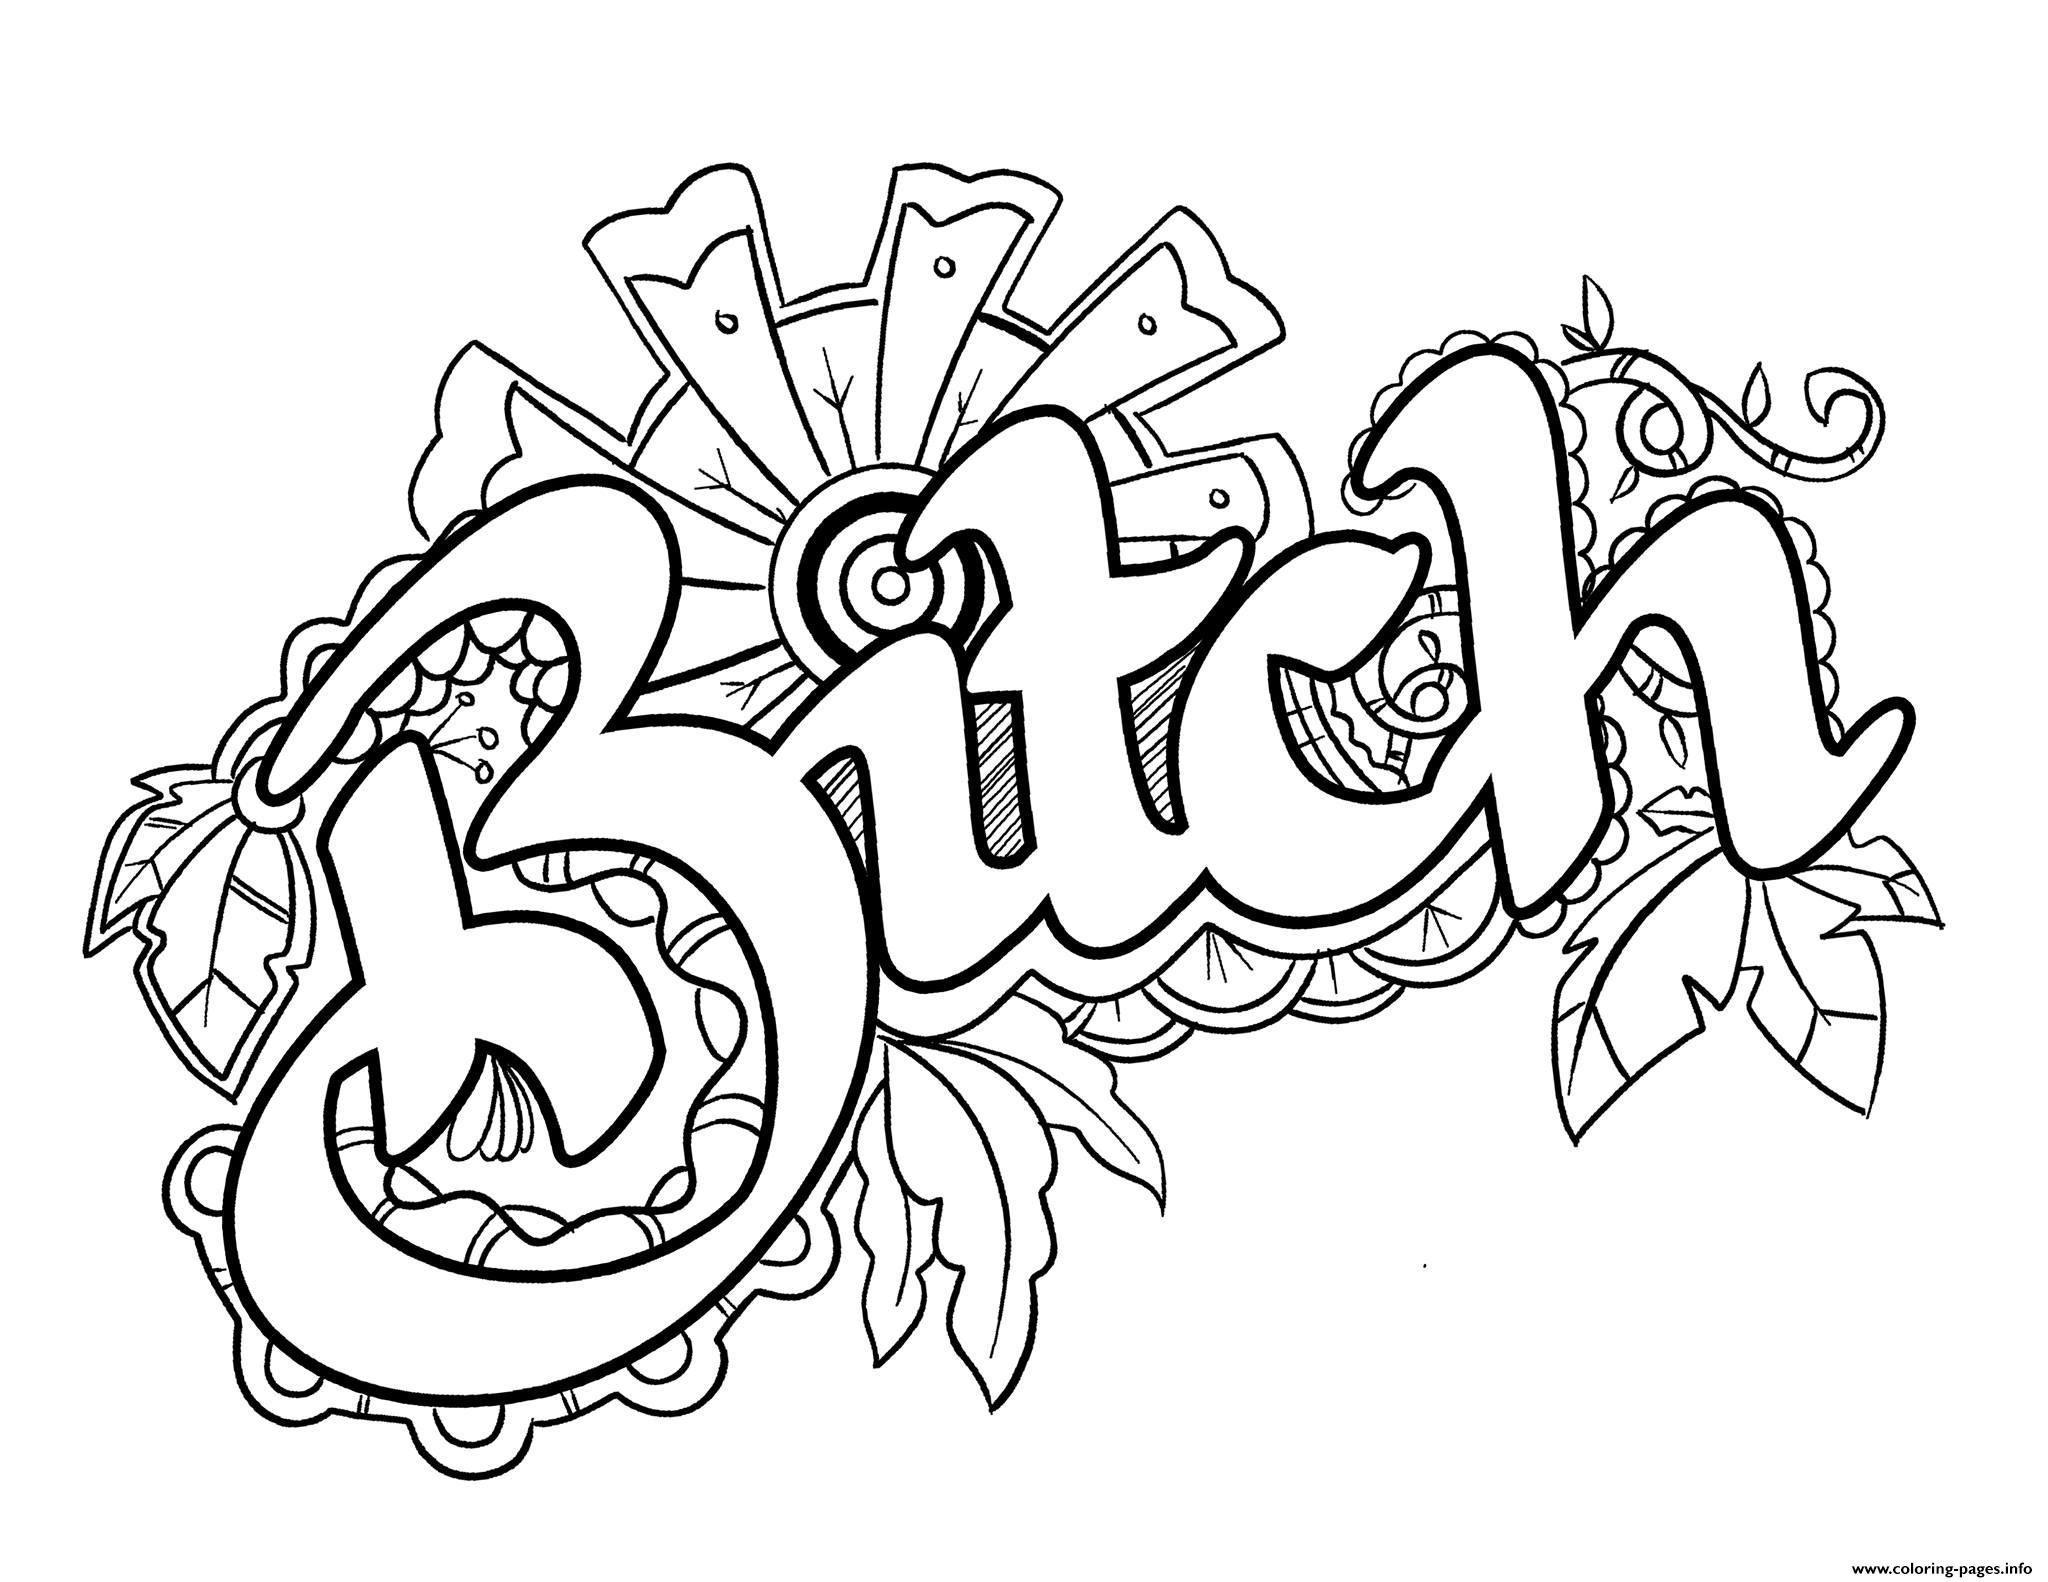 Bitch Swear Word Coloring Pages